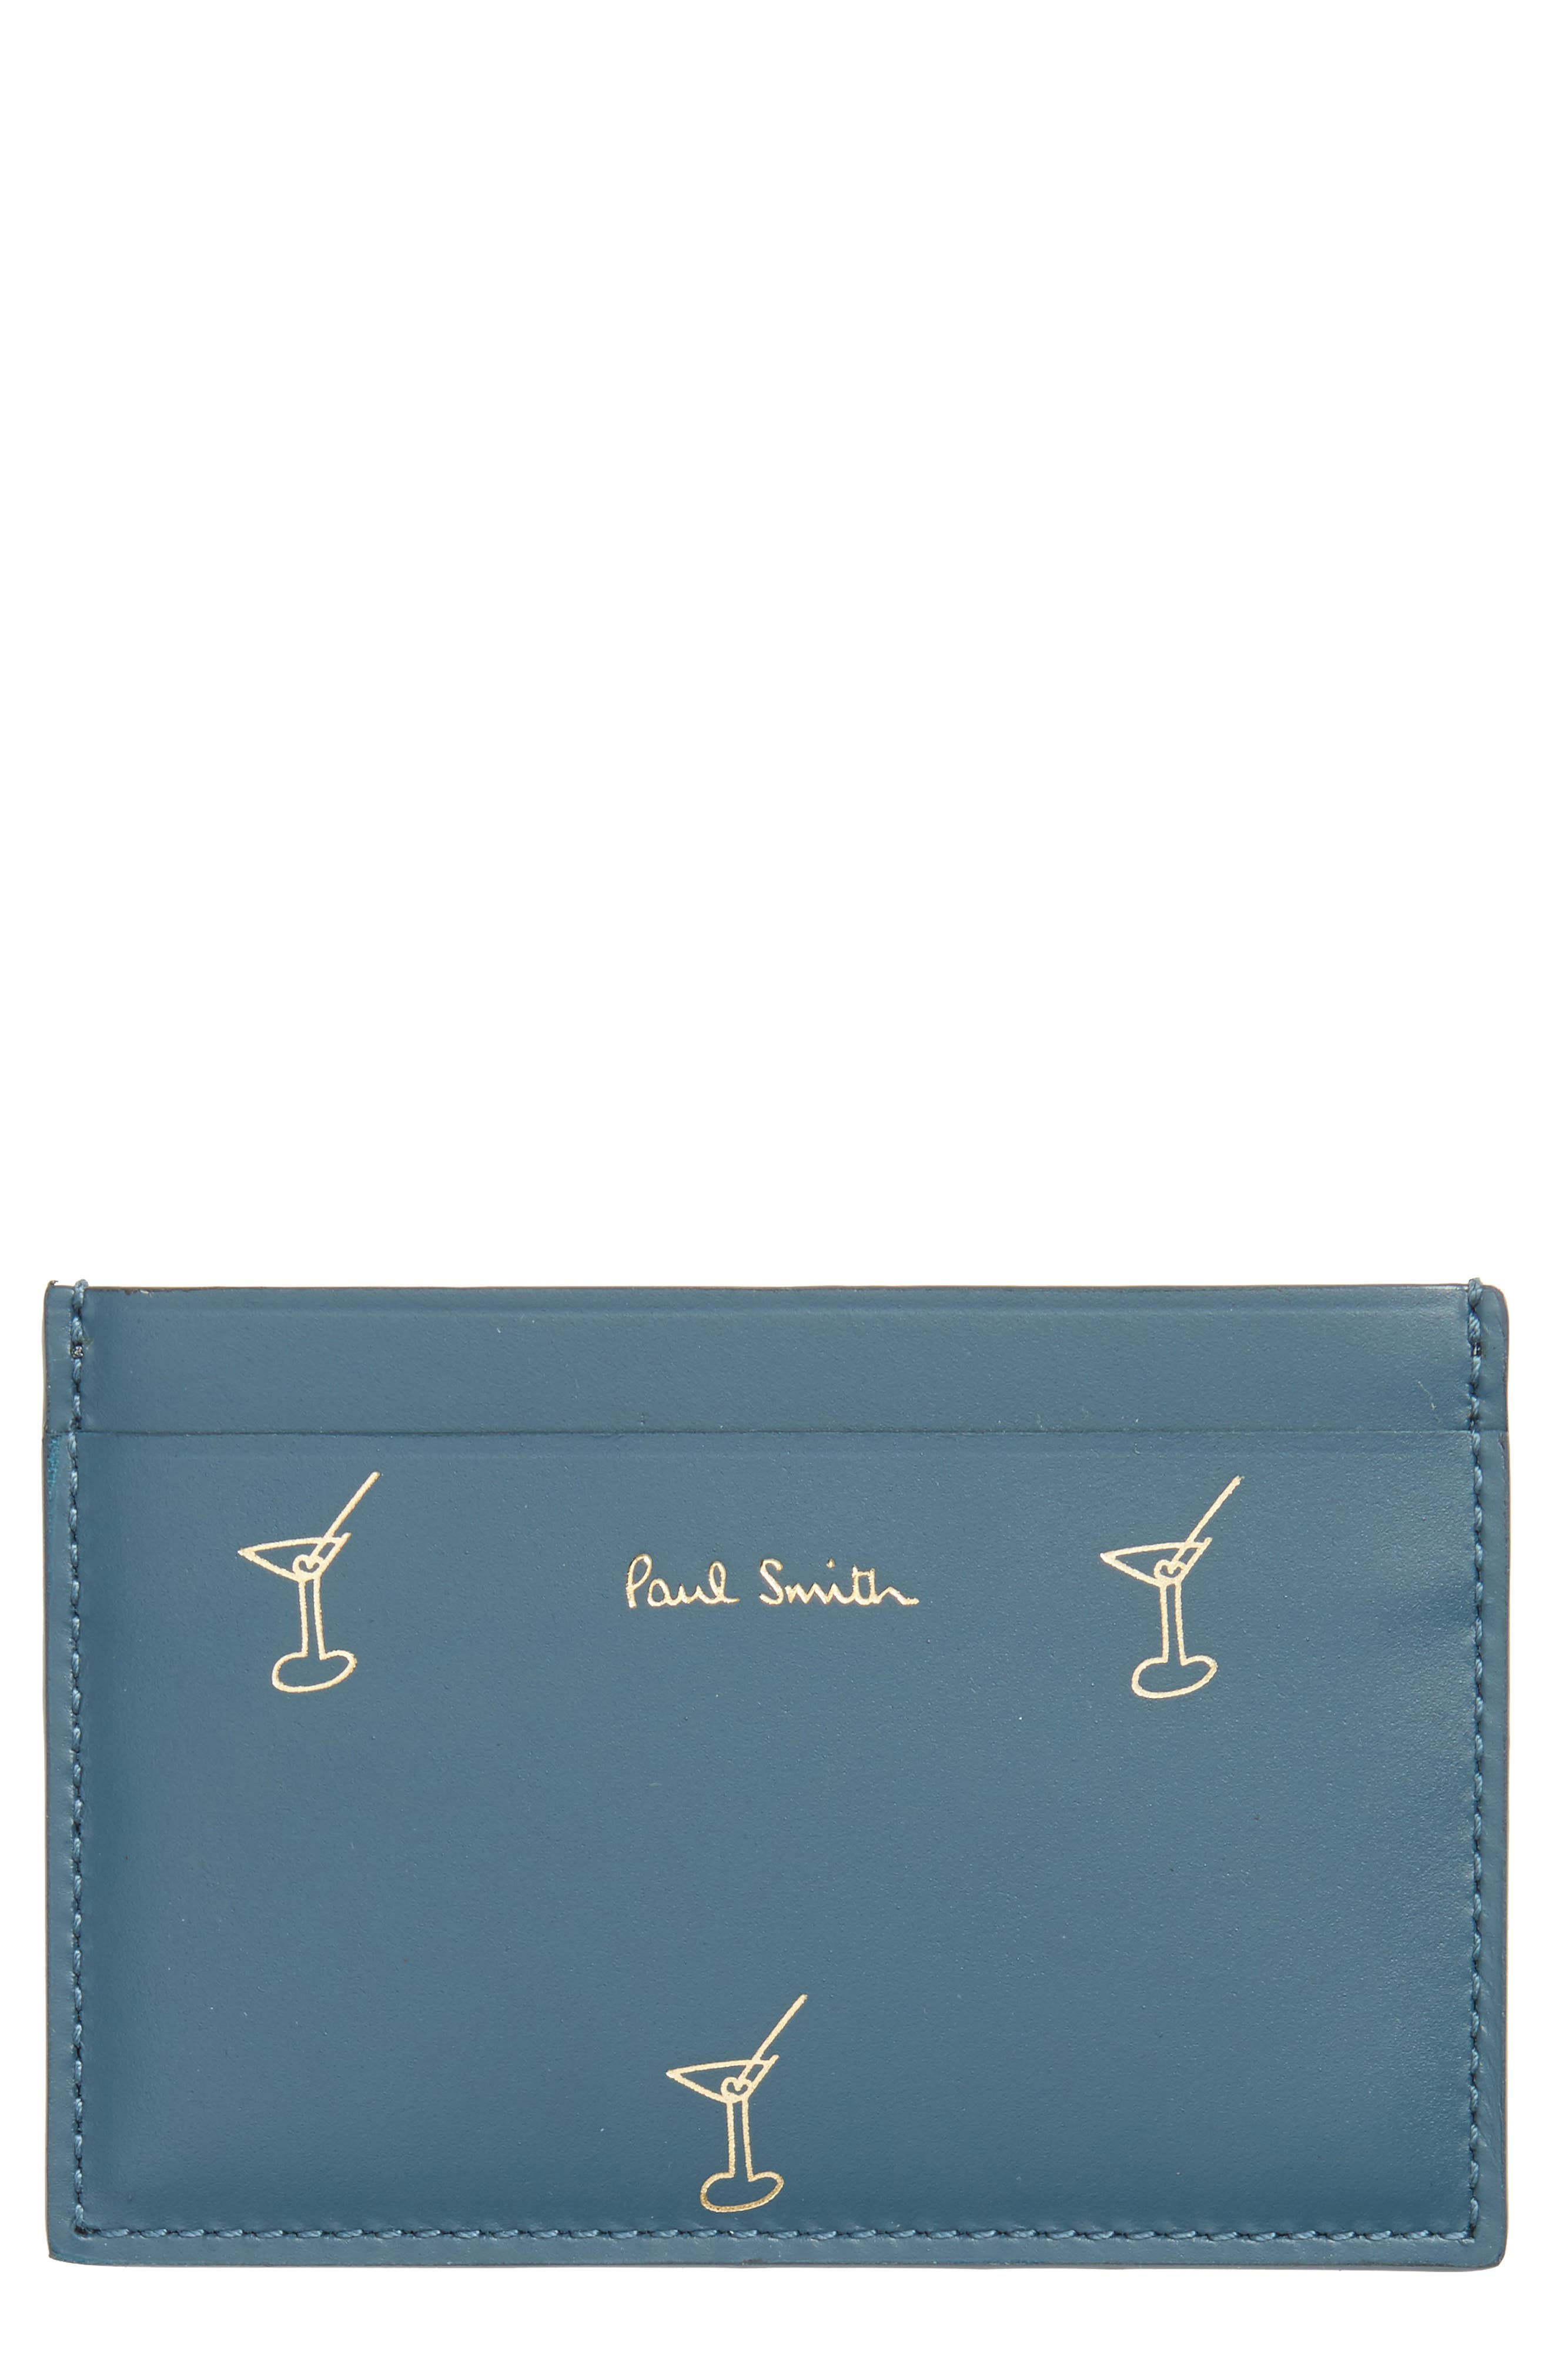 Main Image - Paul Smith Doodles Leather Card Case